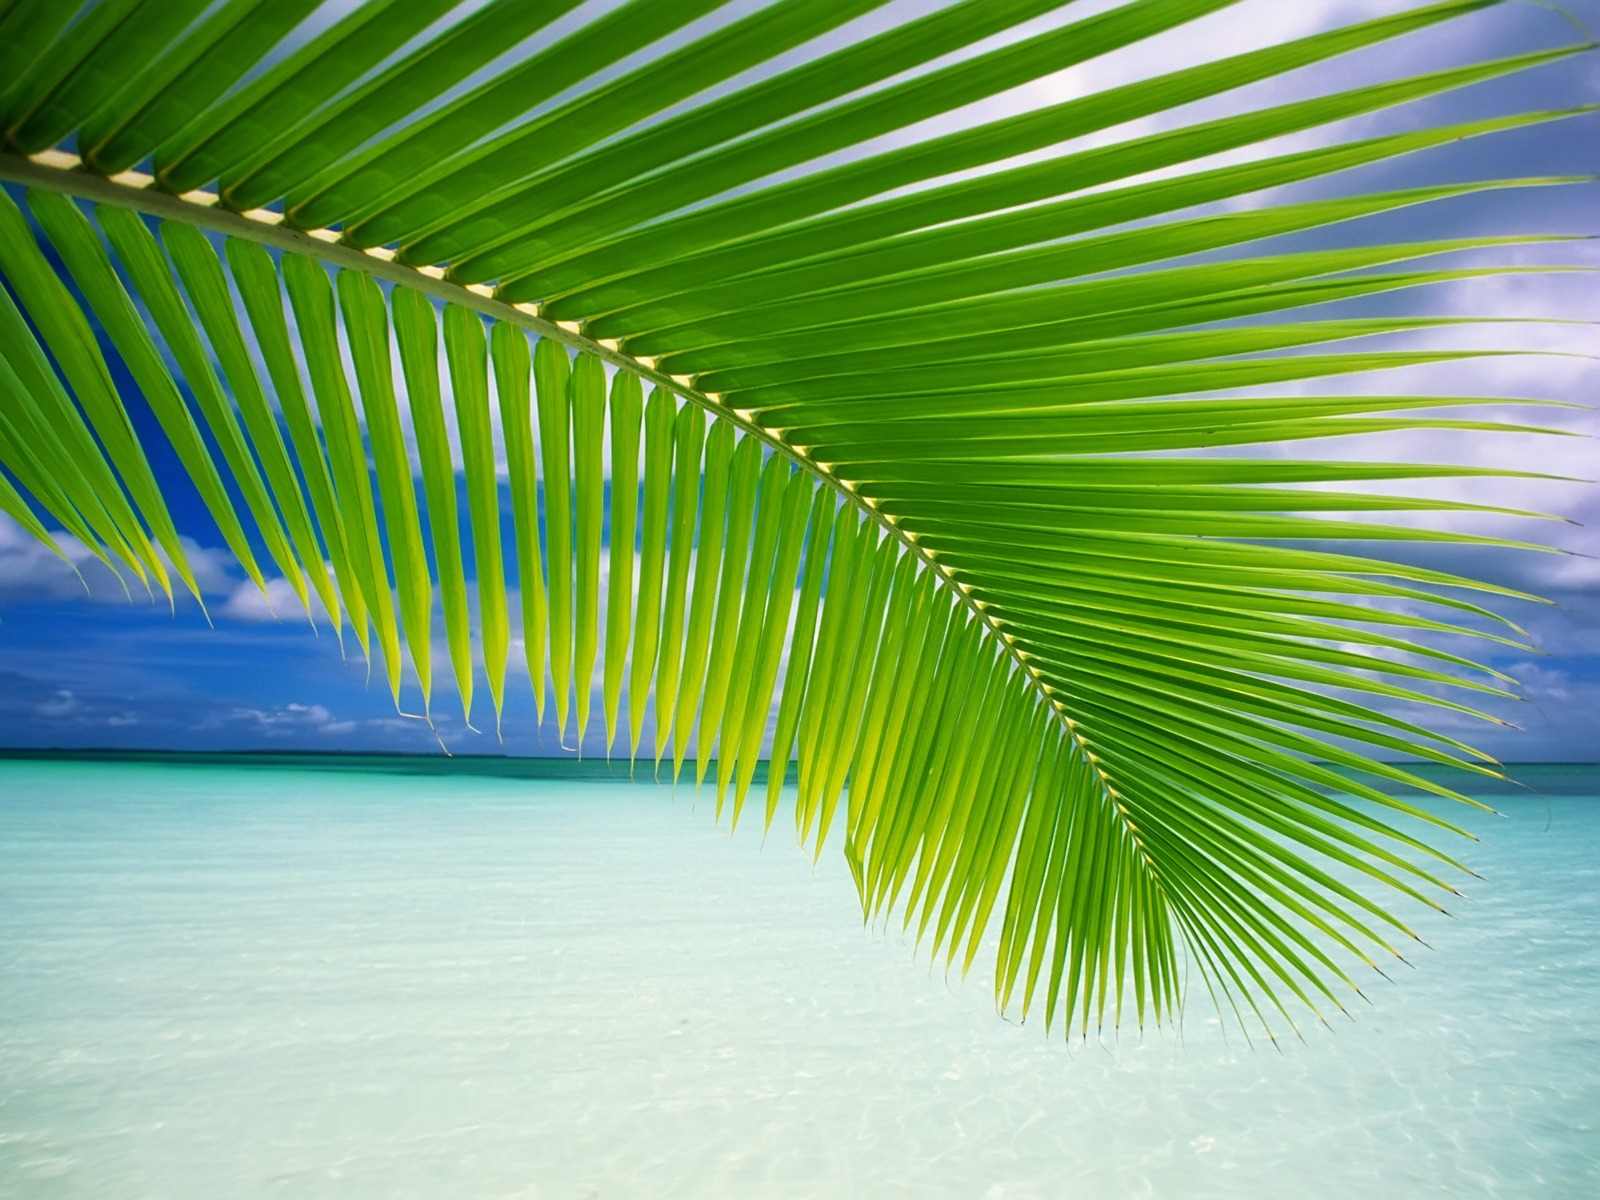 palm tree wallpaper beaches nature wallpapers in jpg format for